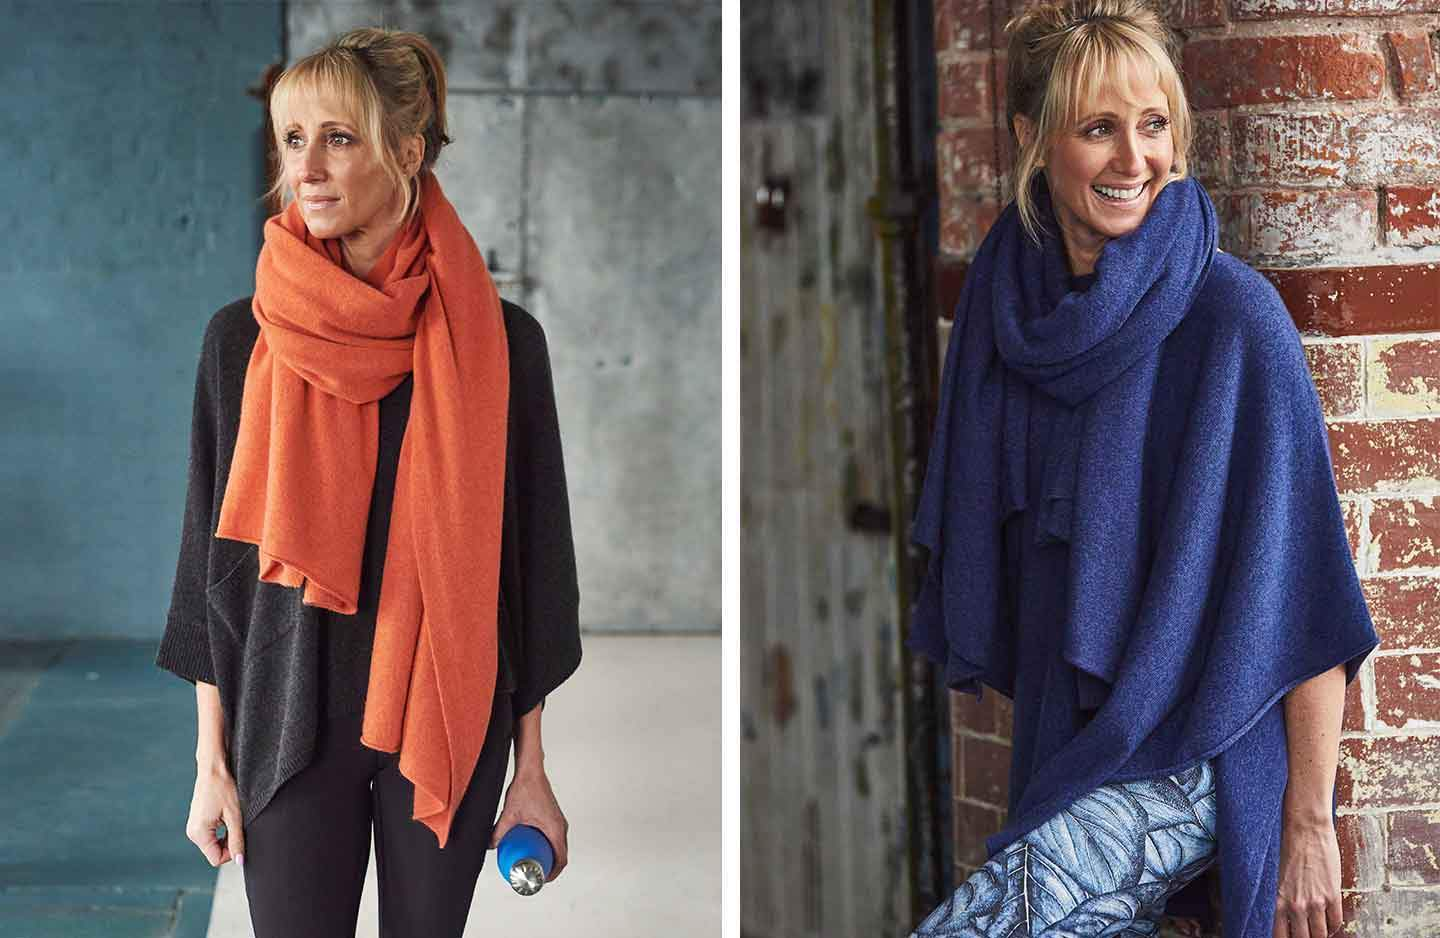 Women against brick wall in grey oversized cashmere poncho with orange cashmere scarf and women in blue cashmere poncho with blue cashmere scarf wrapped around neck